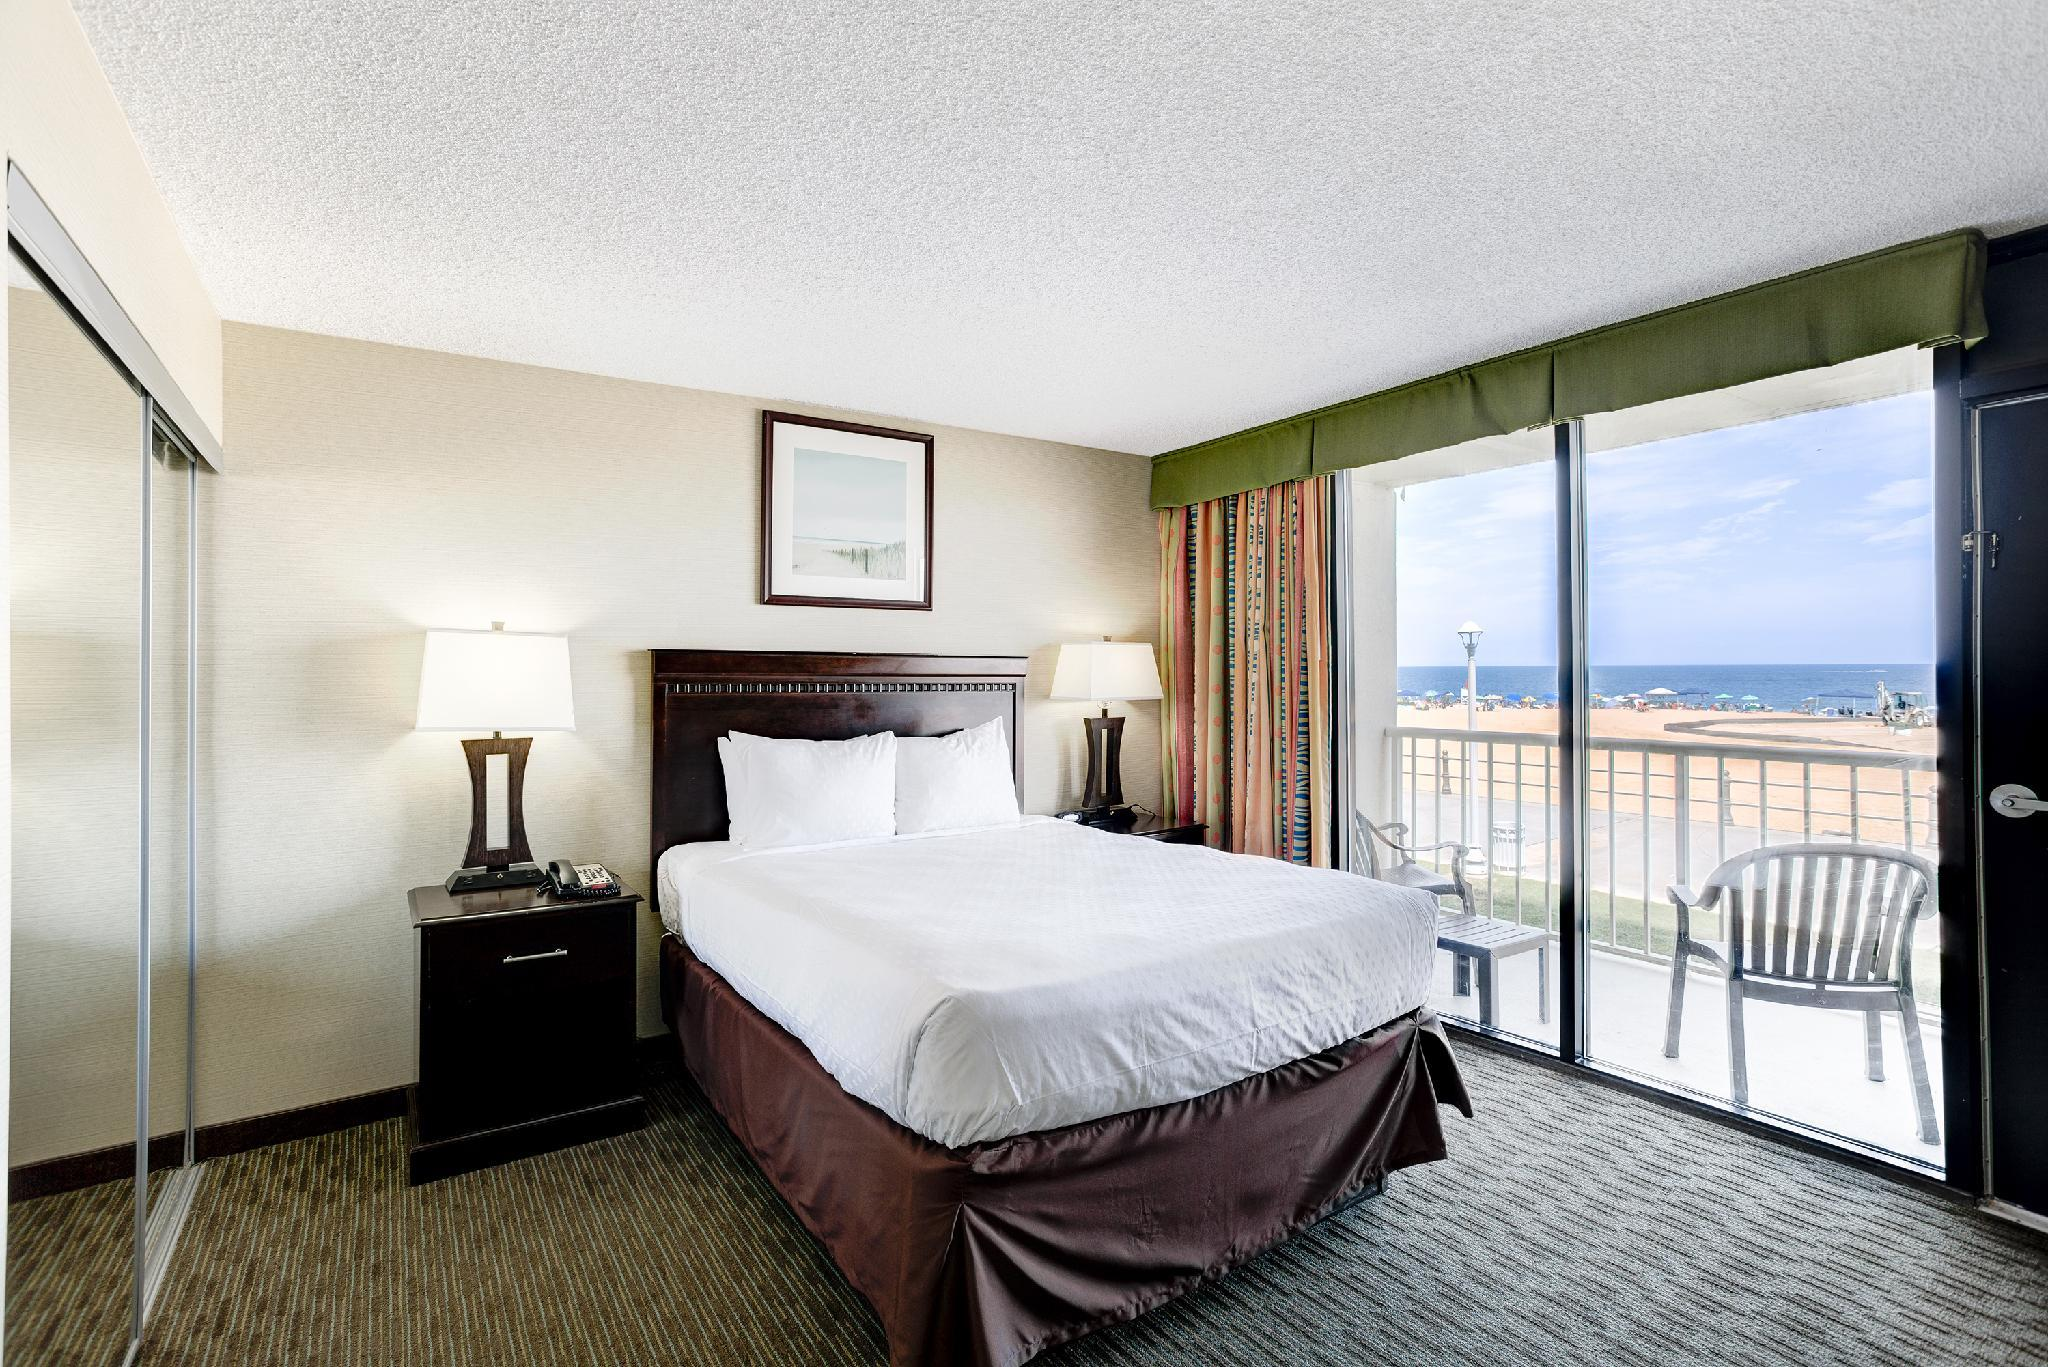 Beach quarters resort in virginia beach va room deals - 2 bedroom hotels in virginia beach ...